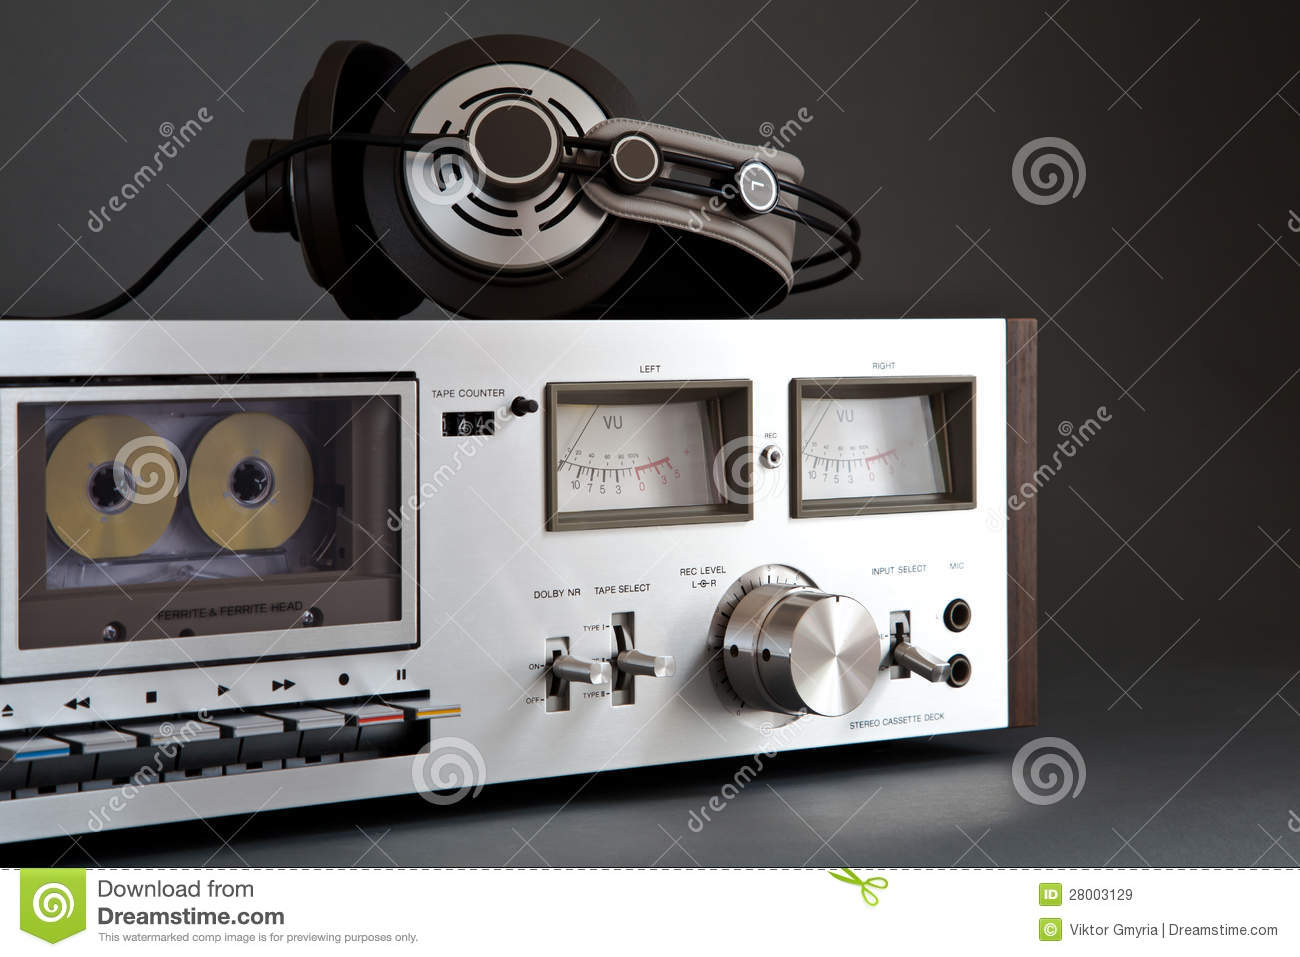 6d9d79d41791 Stereo Cassette Tape Deck Analog Vintage Stock Image - Image of ...